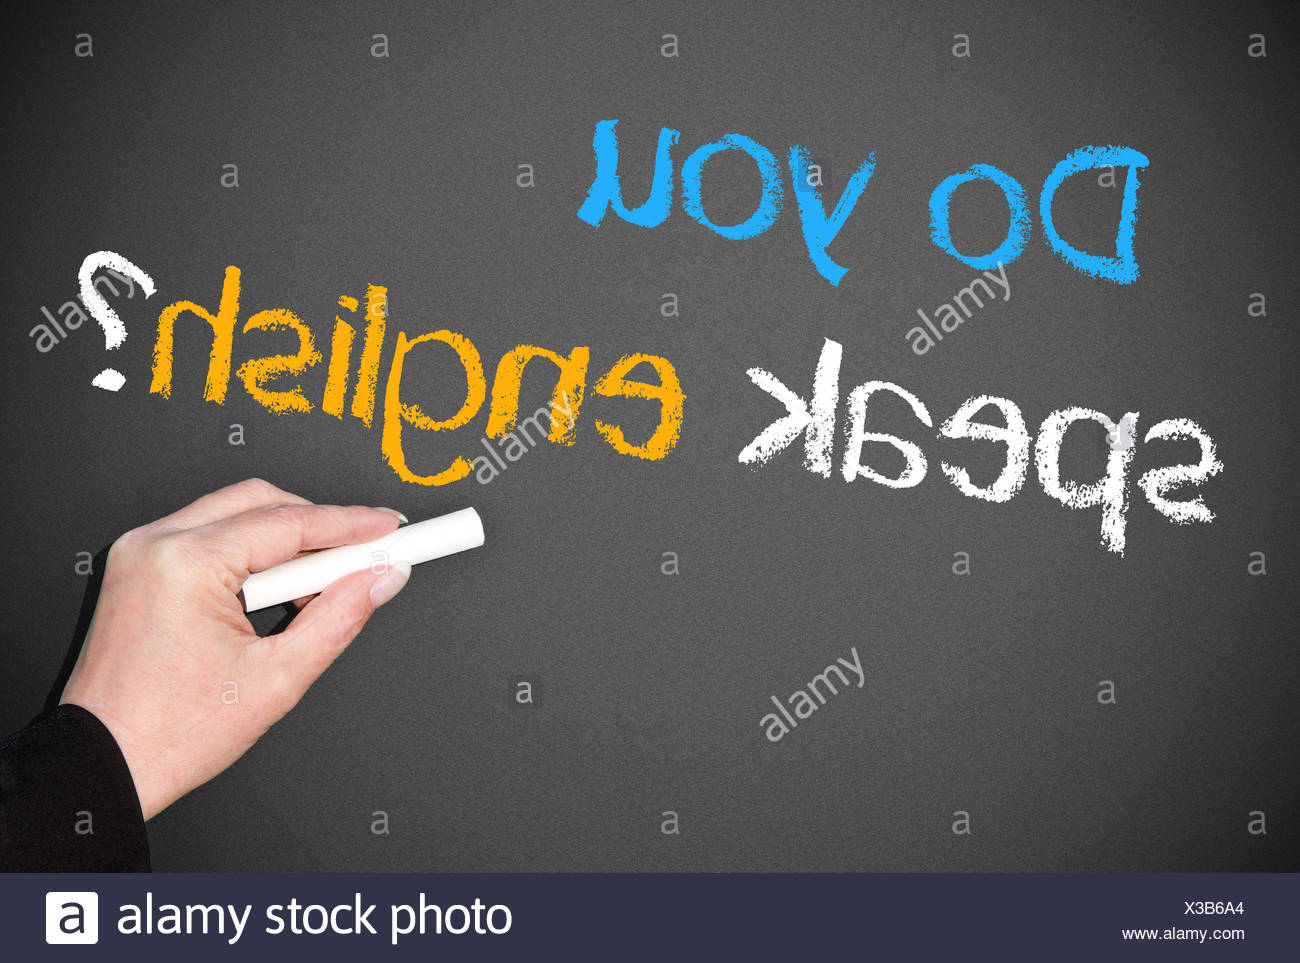 Do you speak english ? Stock Photo